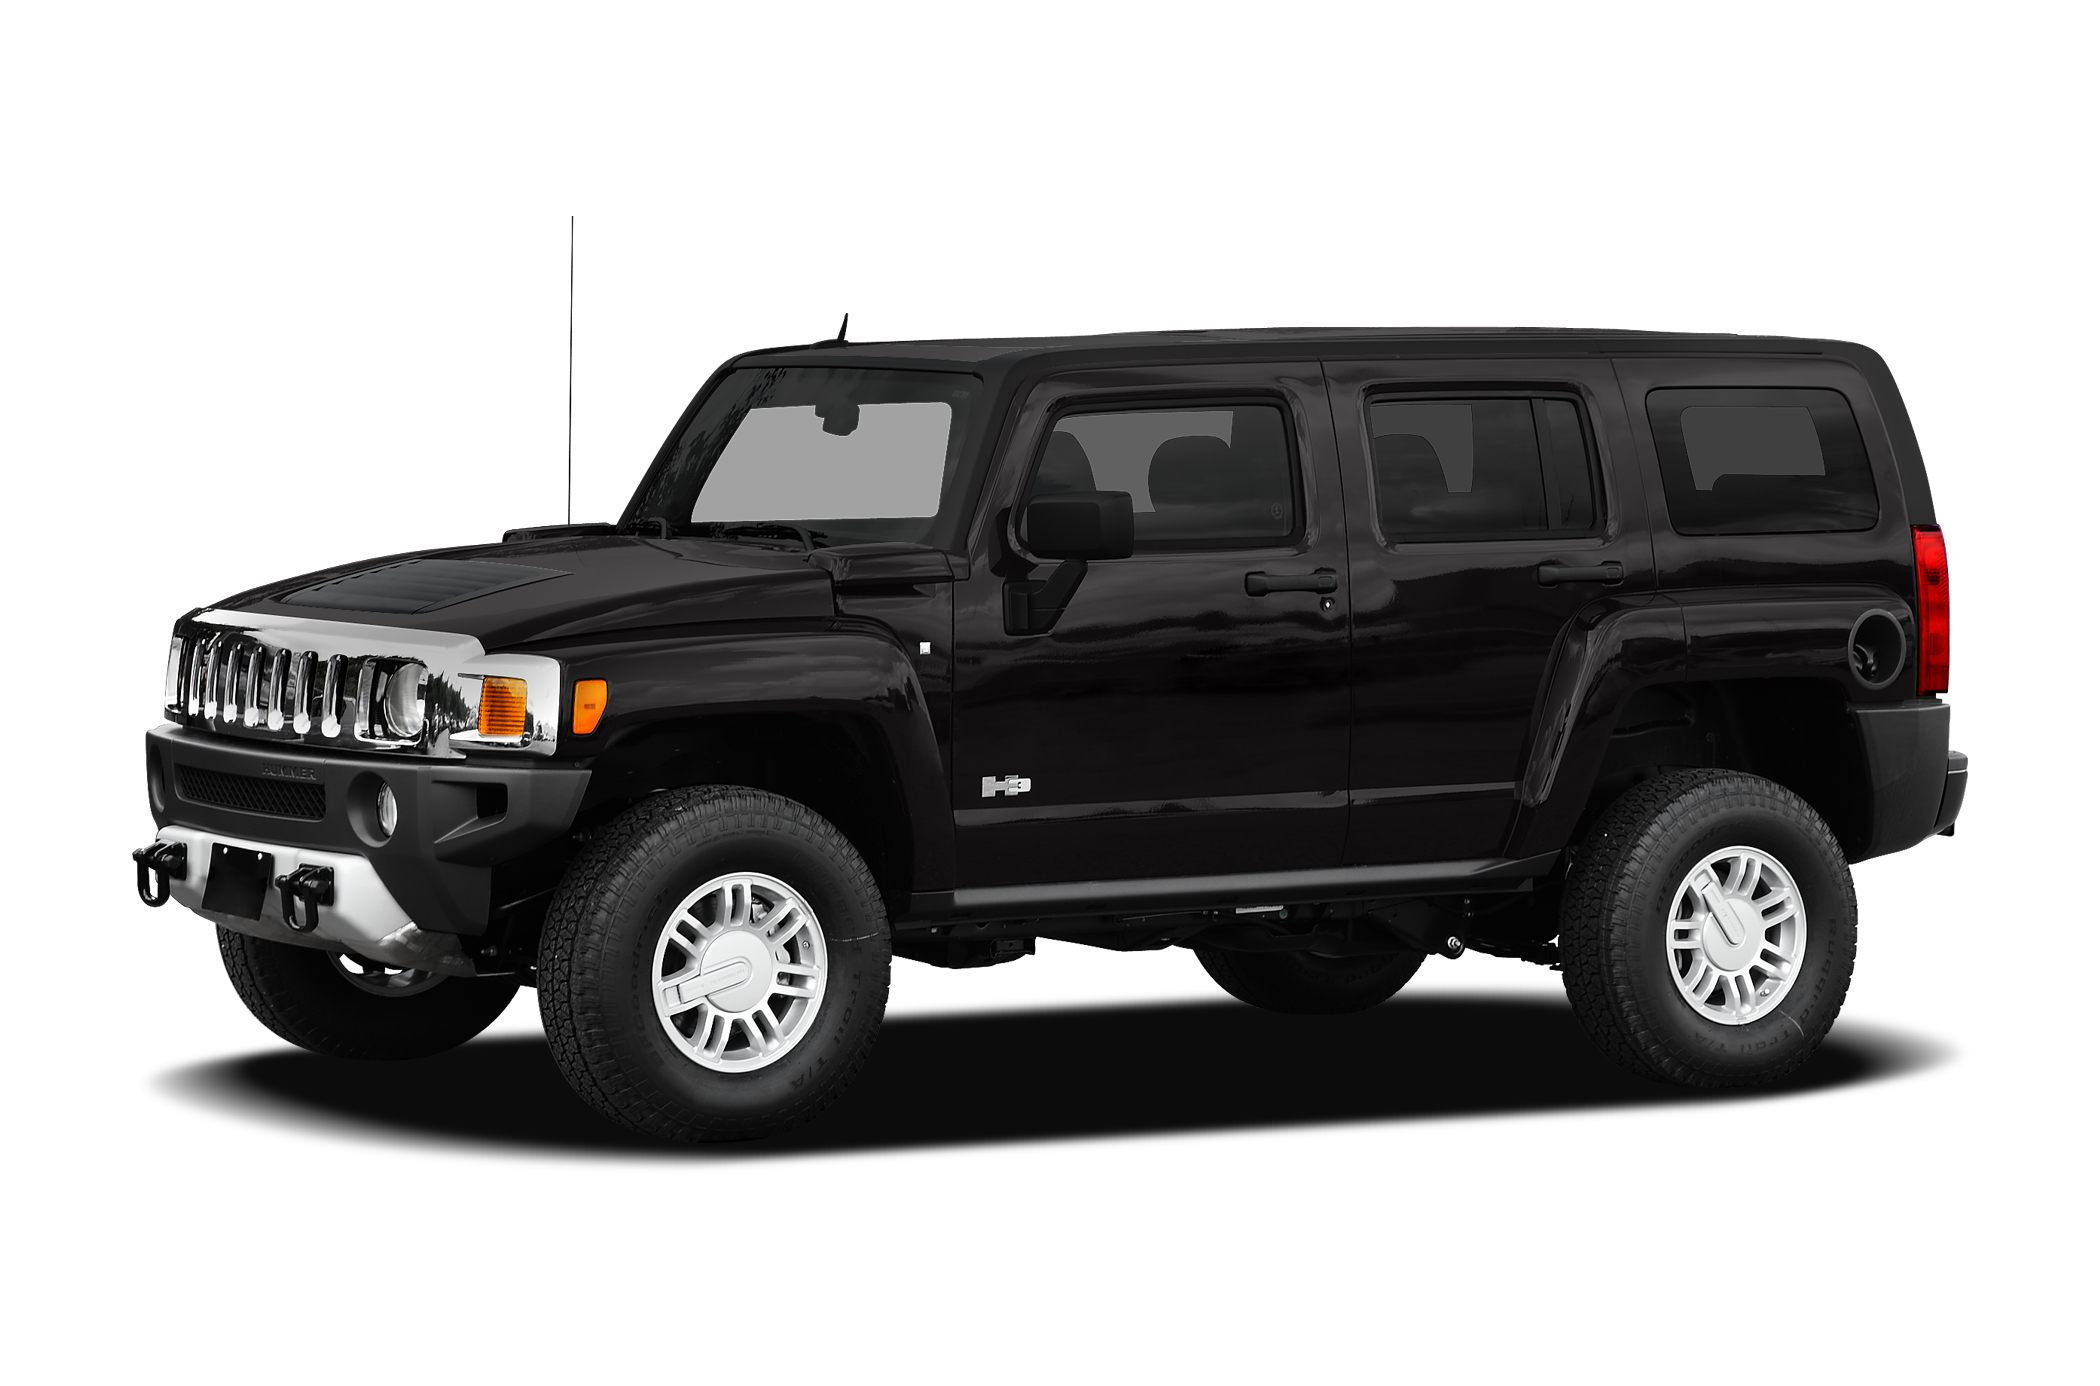 2008 HUMMER H3 SUV New Car Test Drive